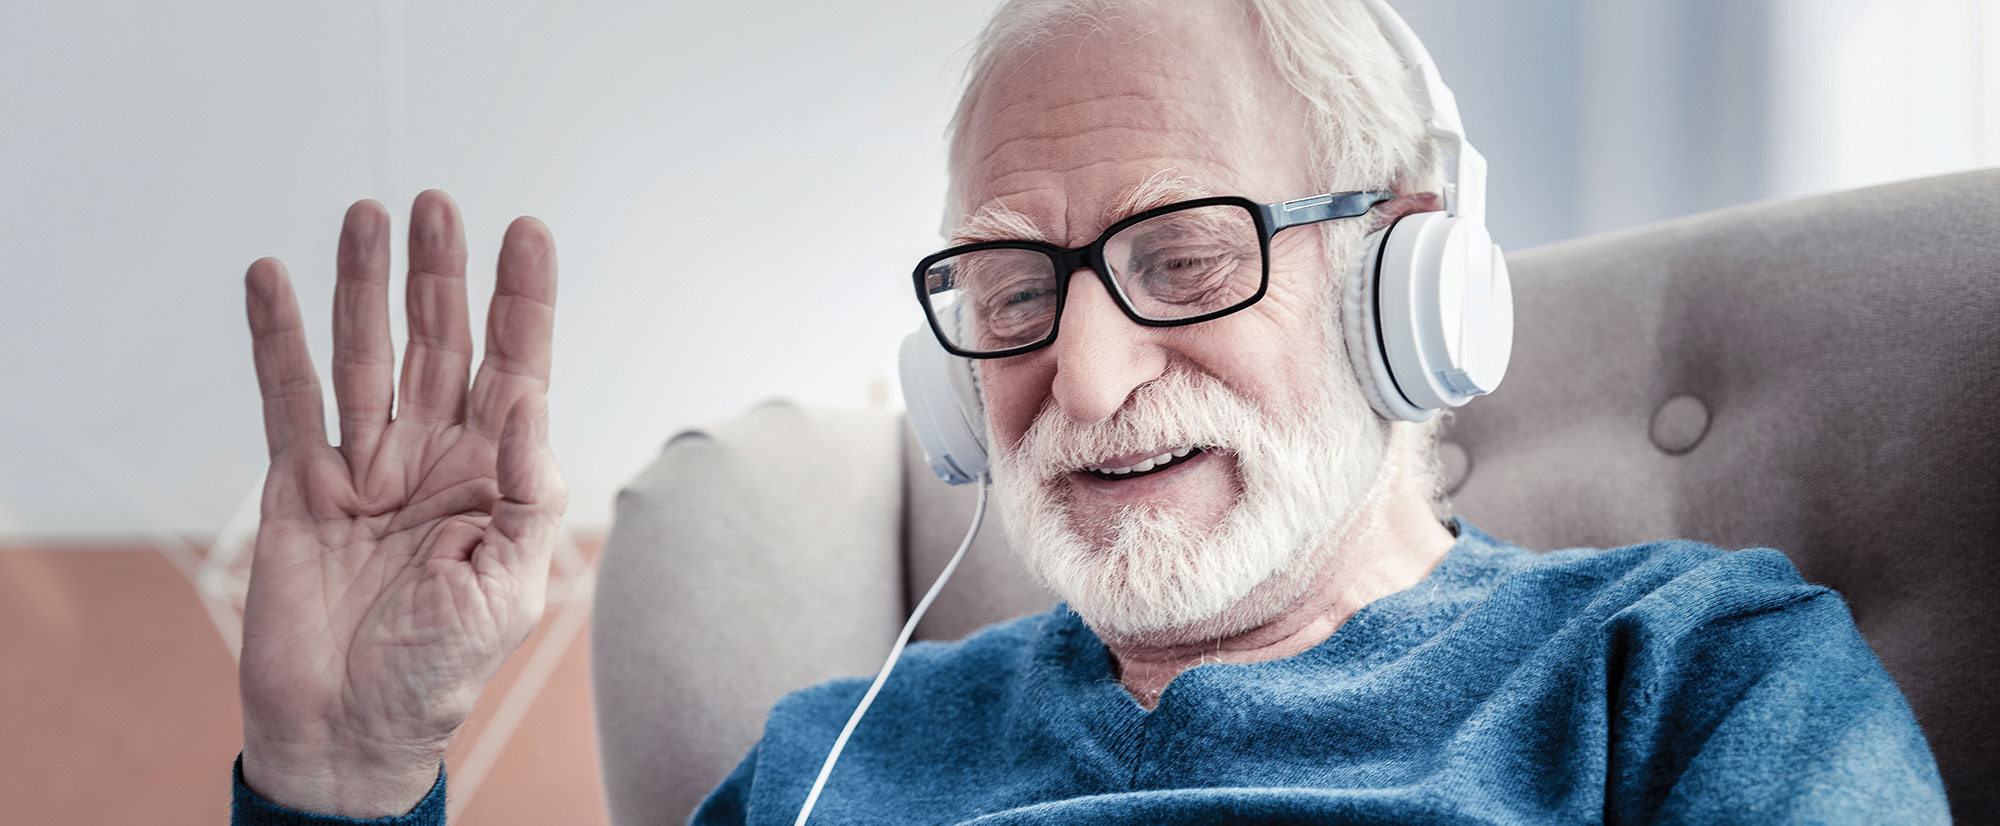 Male resident wearing headphones with hand raised, enjoying the benefits of the Allī Technology Suite